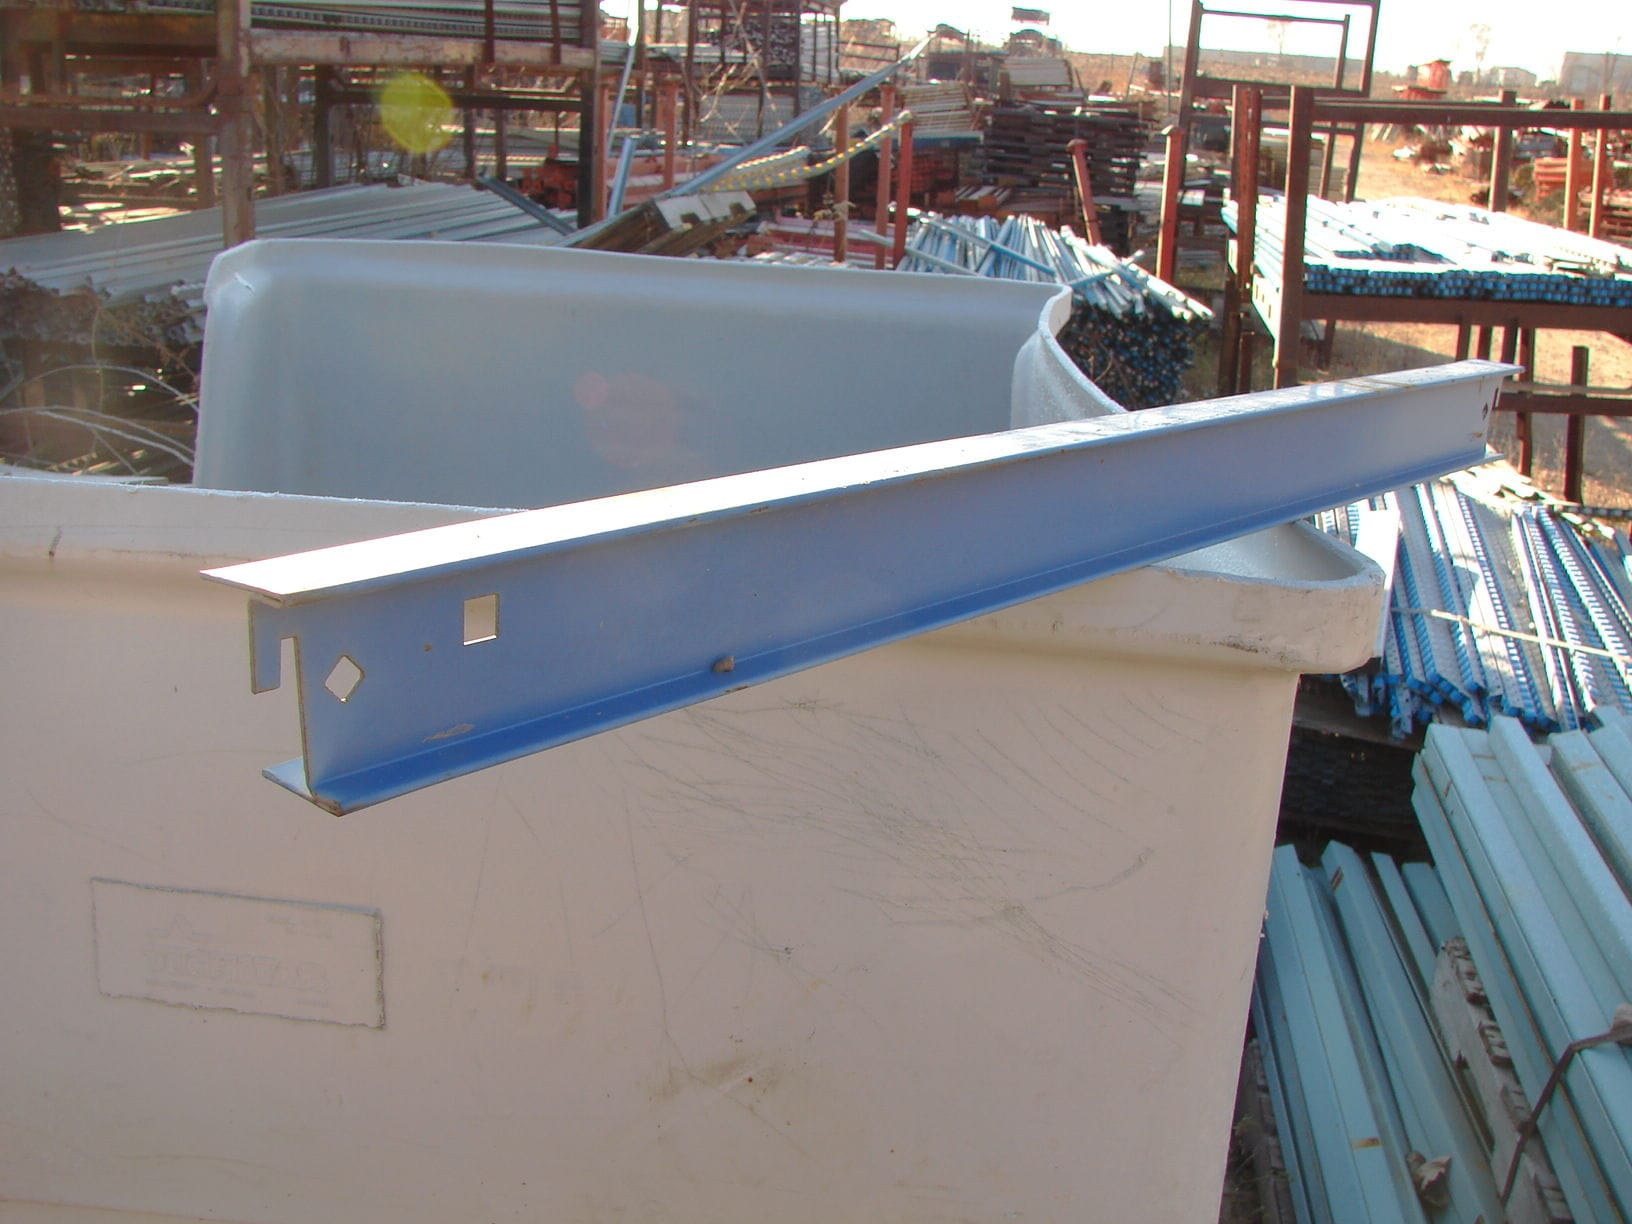 I-Beam style pallet supports